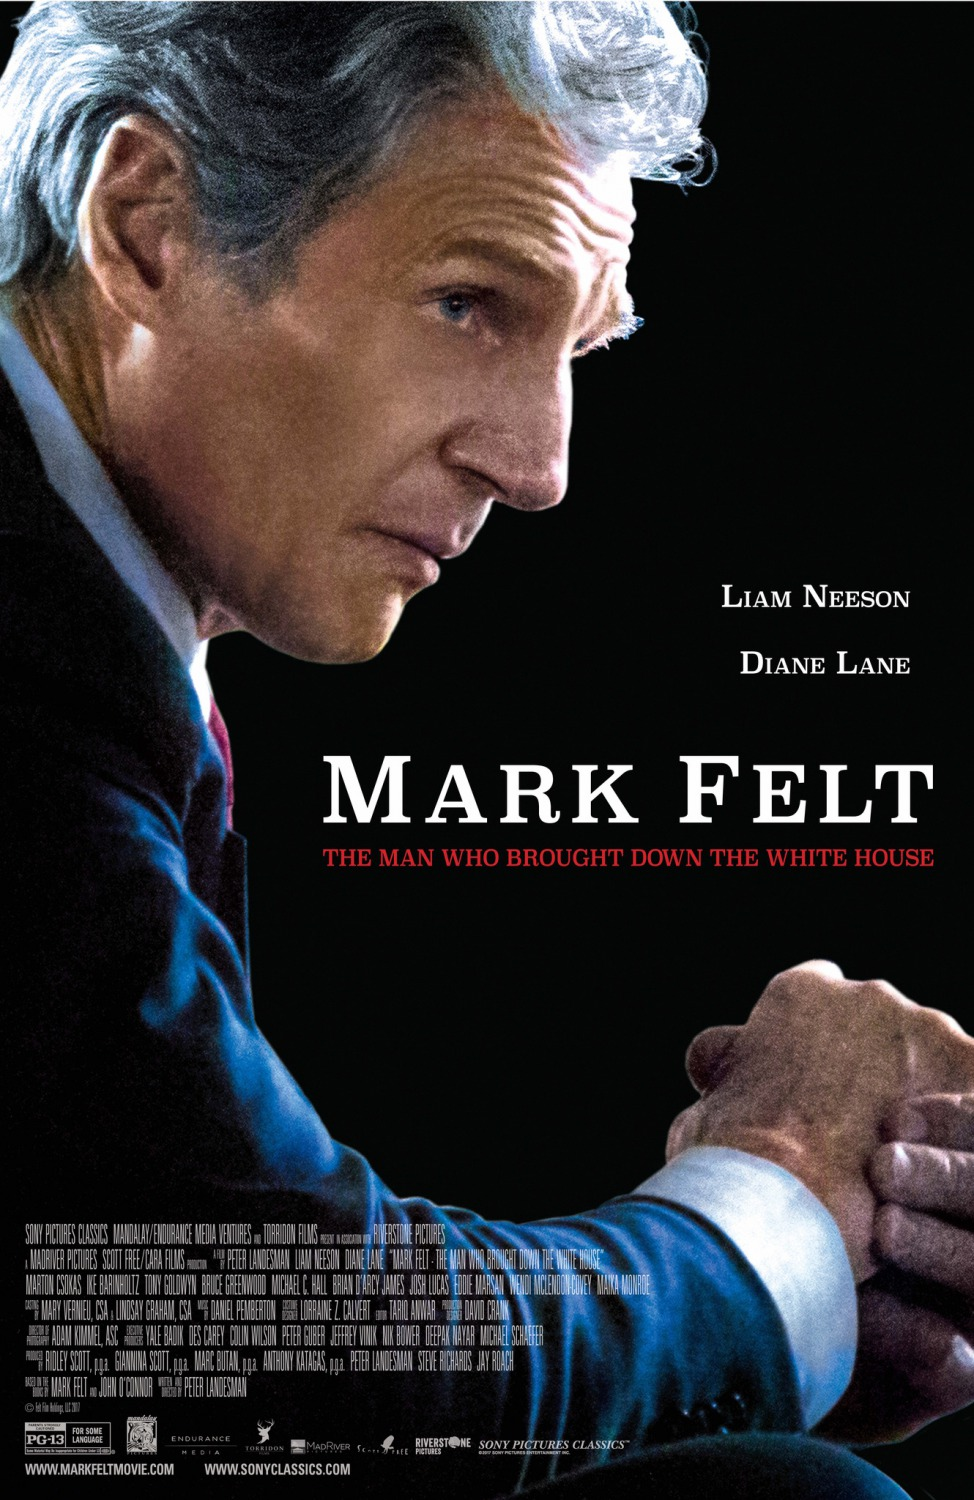 mark_felt_the_man_who_brought_down_the_white_house_xlg.jpg